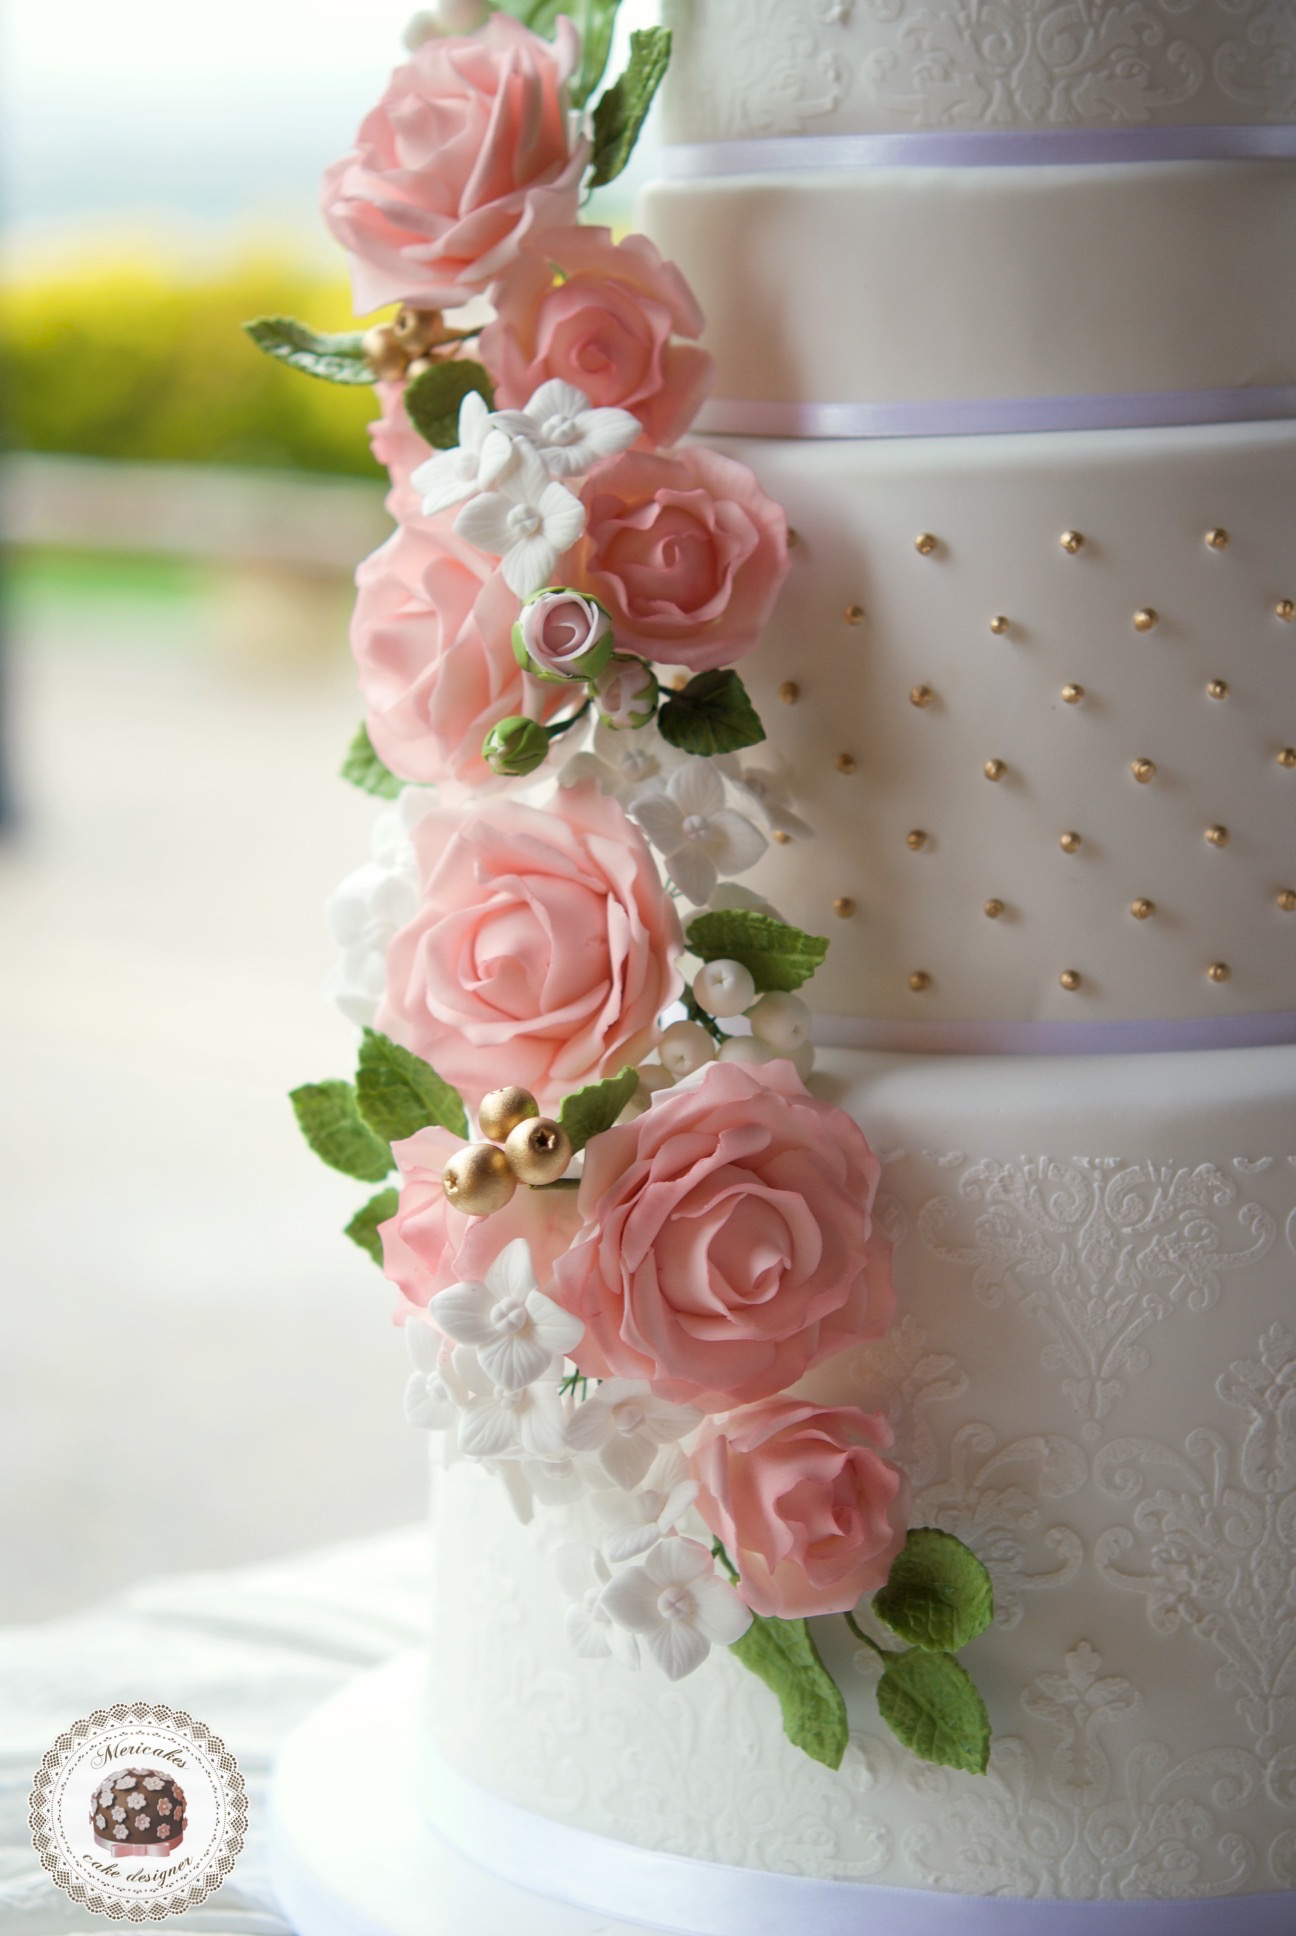 White wedding cake with gold pearls and pink sugar flowers